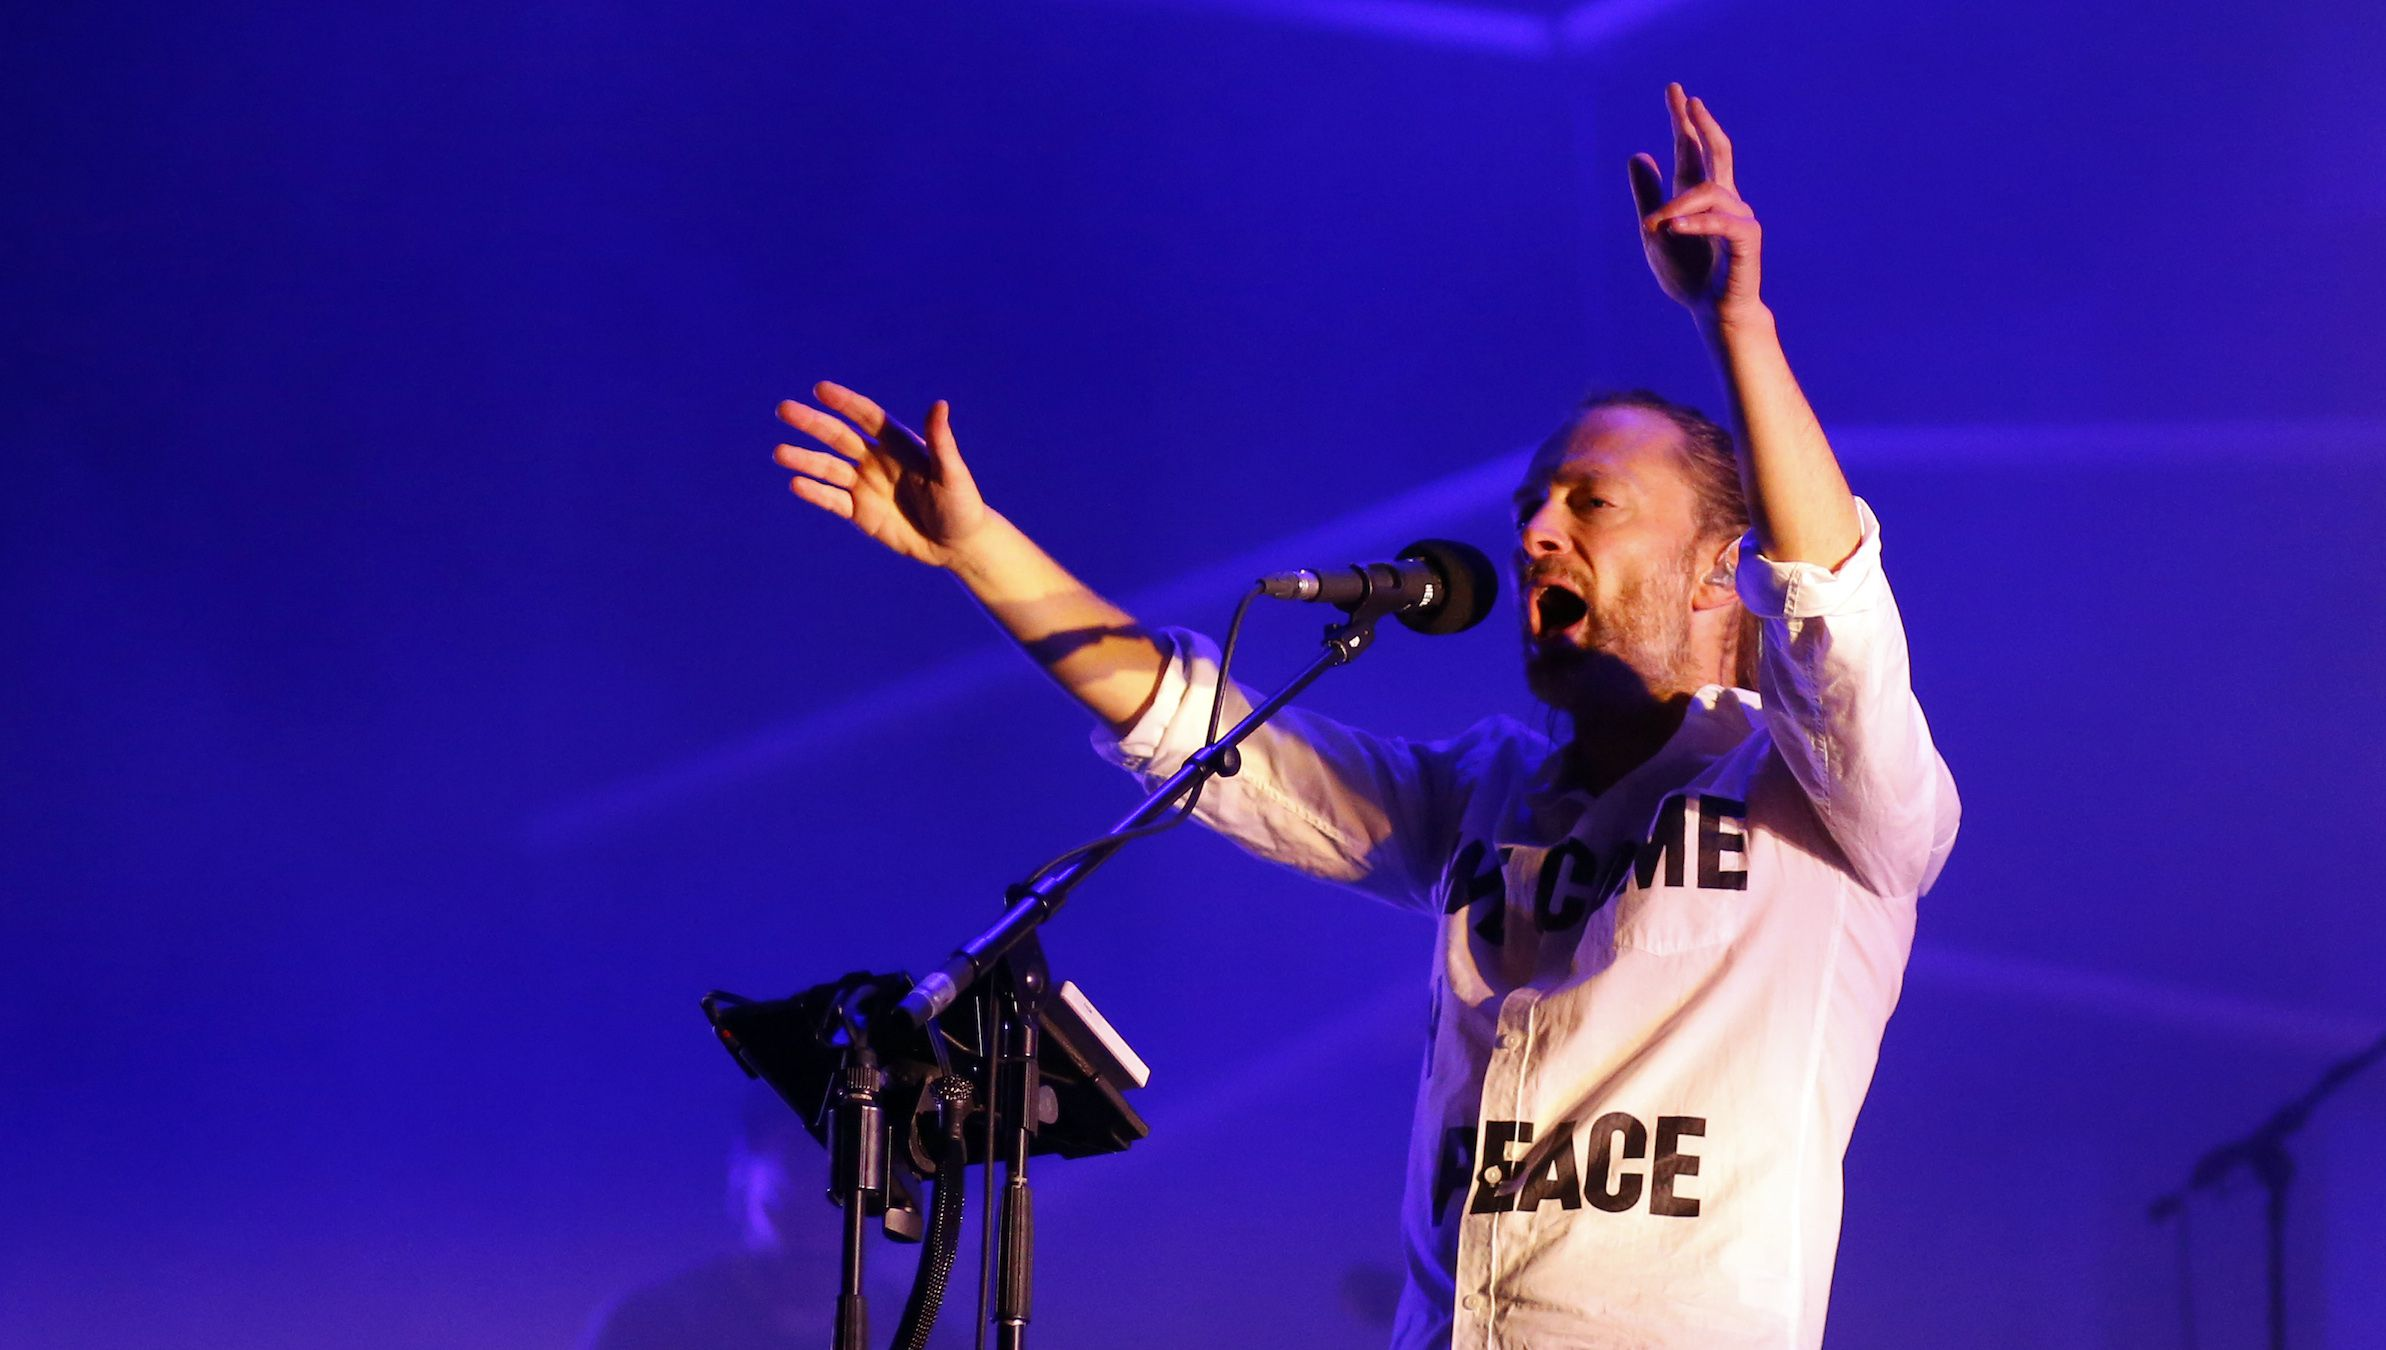 """Singer Thom Yorke of the band """"Atoms for Peace"""" performs during the third day of the 13th EXIT music festival at Petrovaradin Fortress, in Novi Sad July 13, 2013. REUTERS/Marko Djurica (SERBIA - Tags: ENTERTAINMENT) - RTX11M9O"""